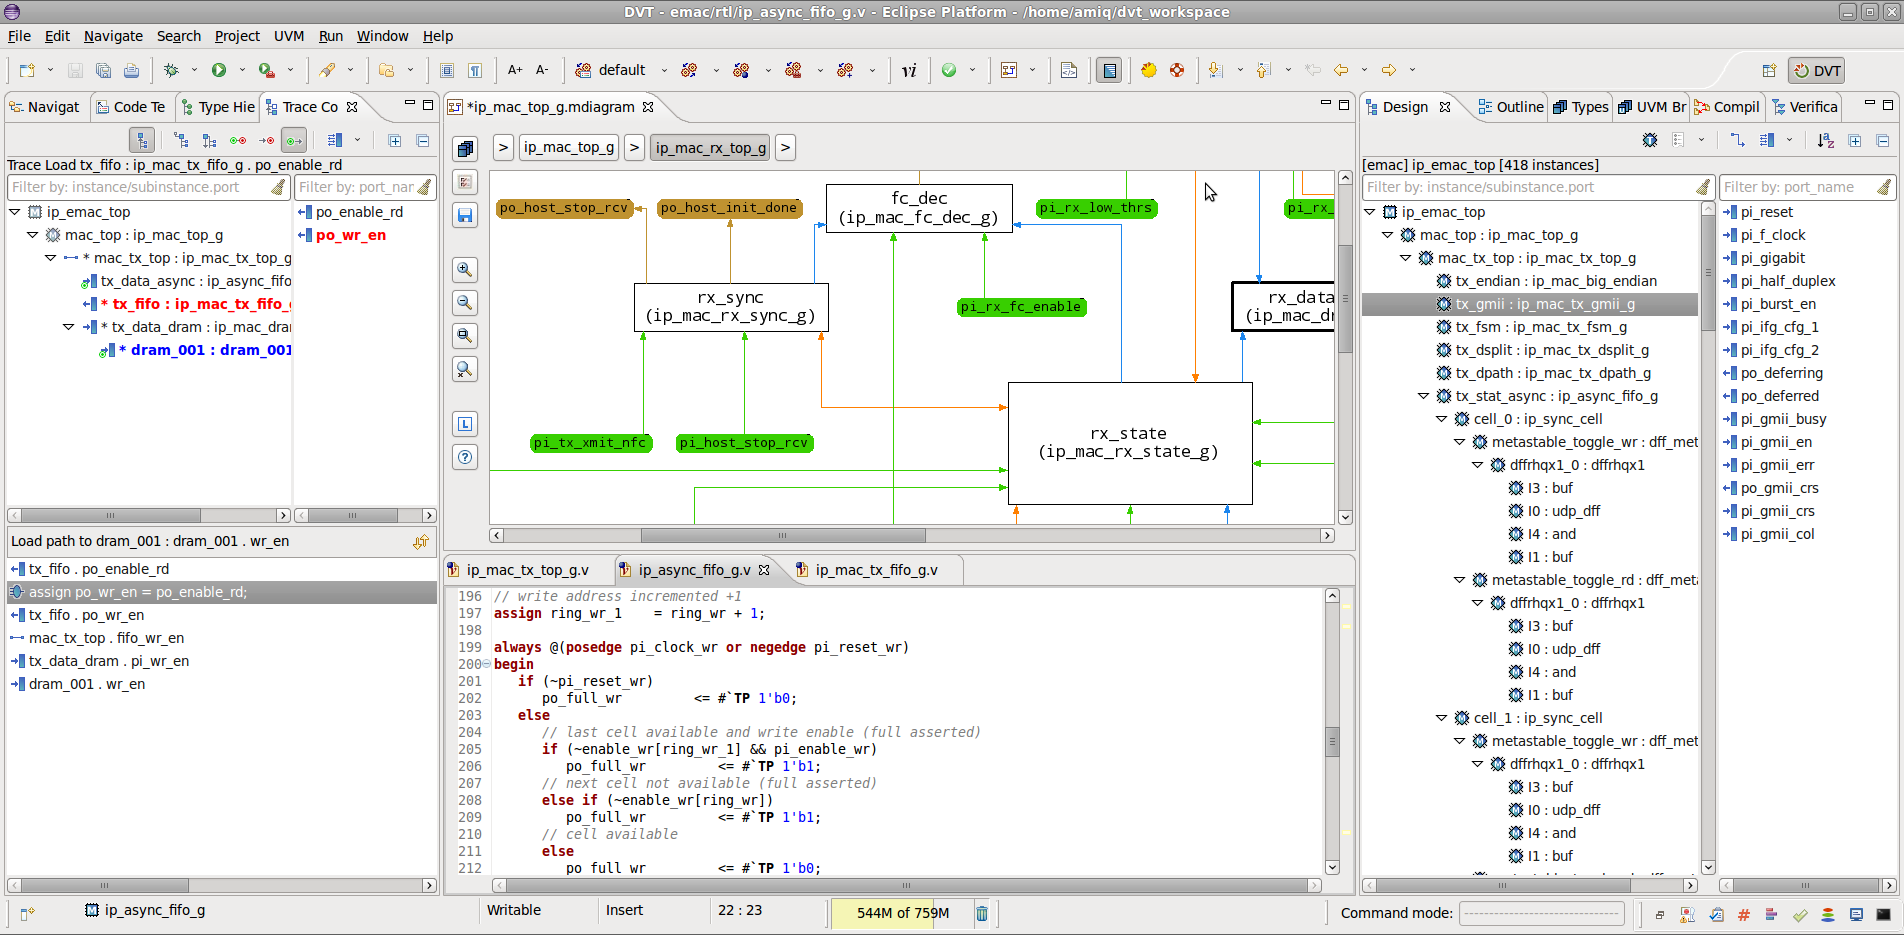 Explore a Design with DVT Eclipse IDE